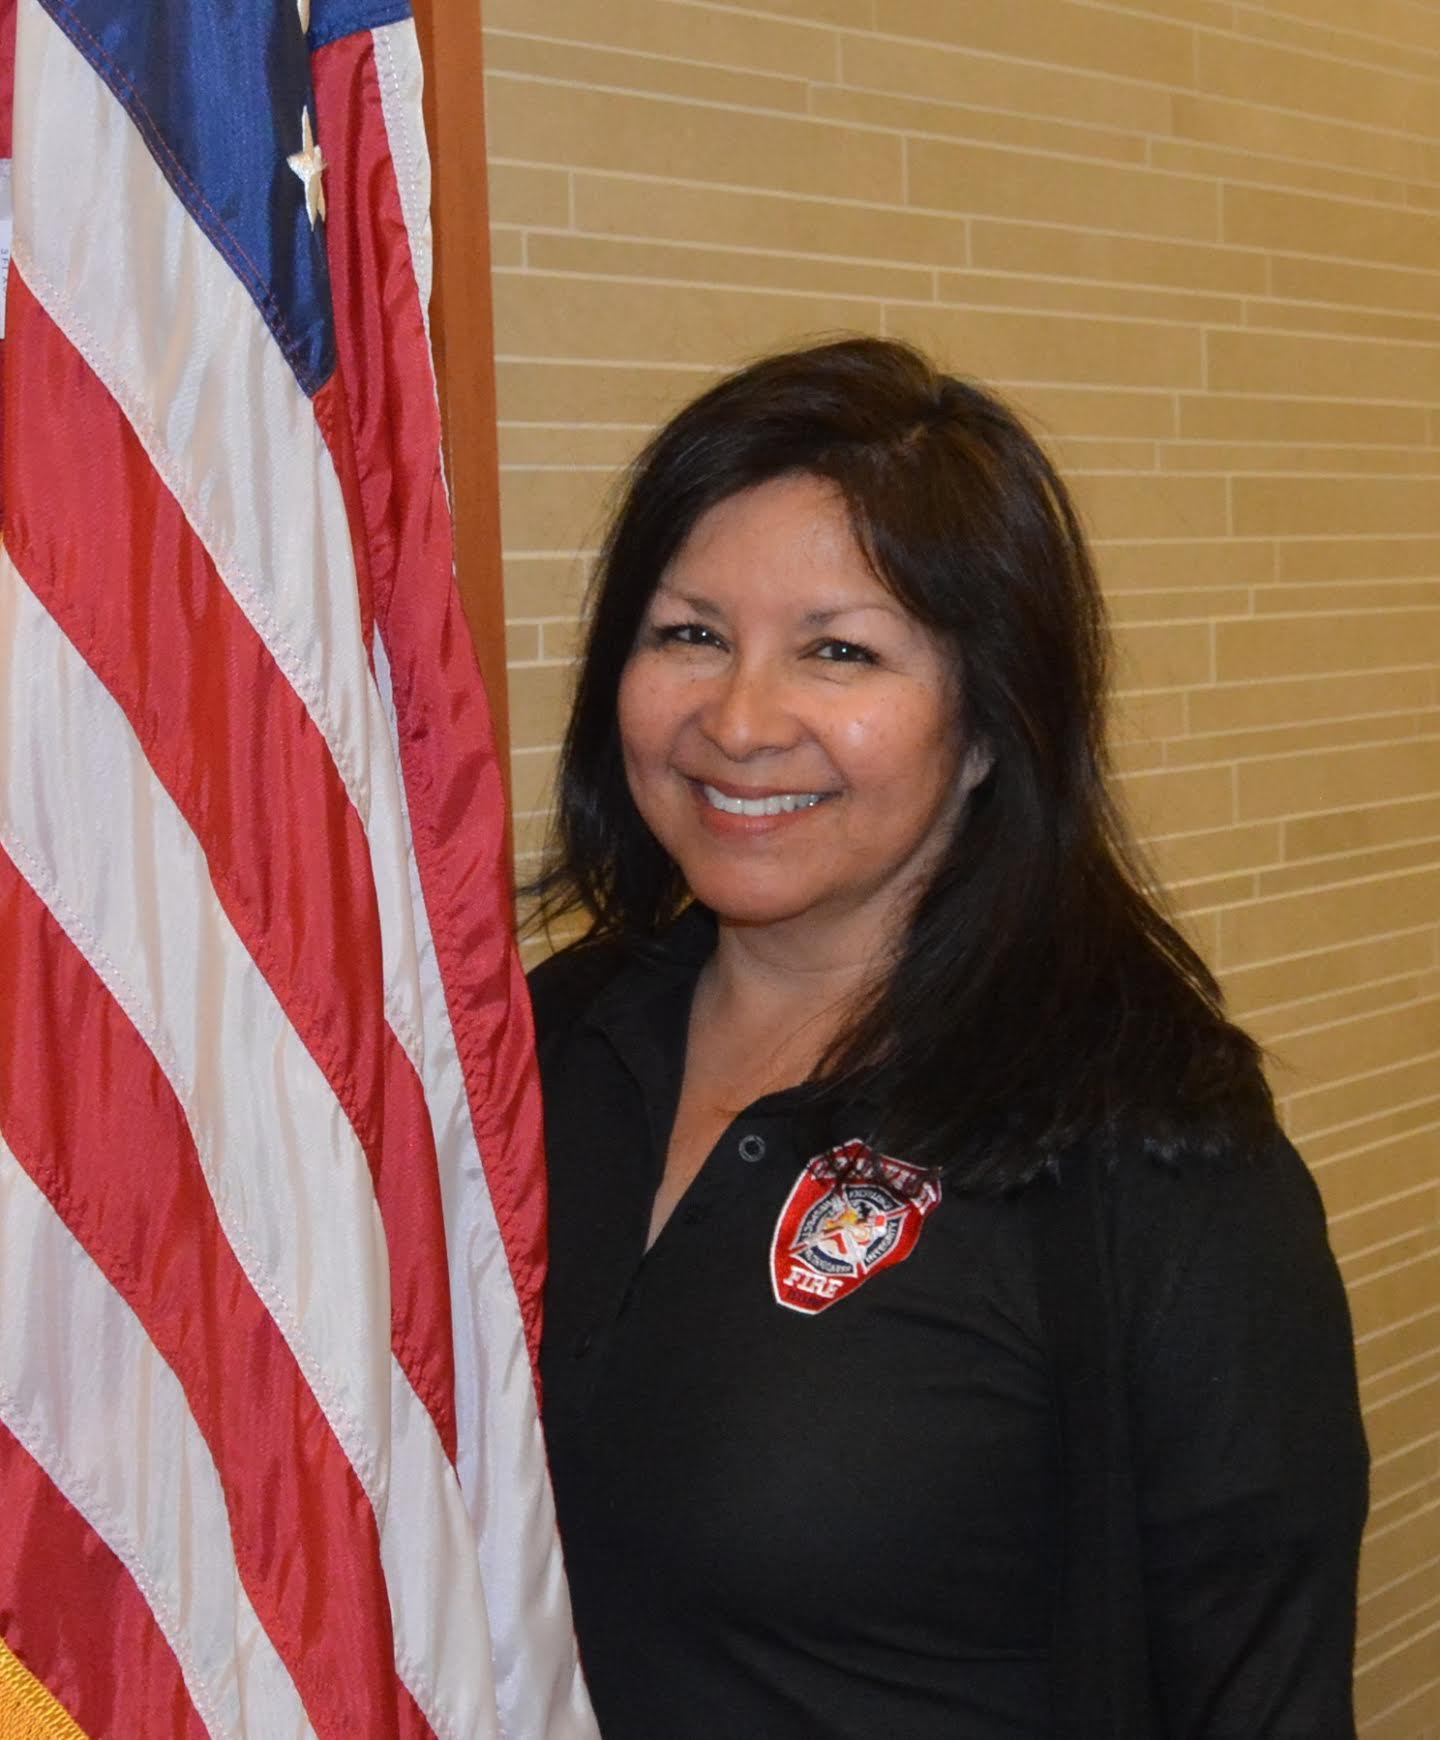 Alma Nielsen Chino Valley Fire District Employee of the Year